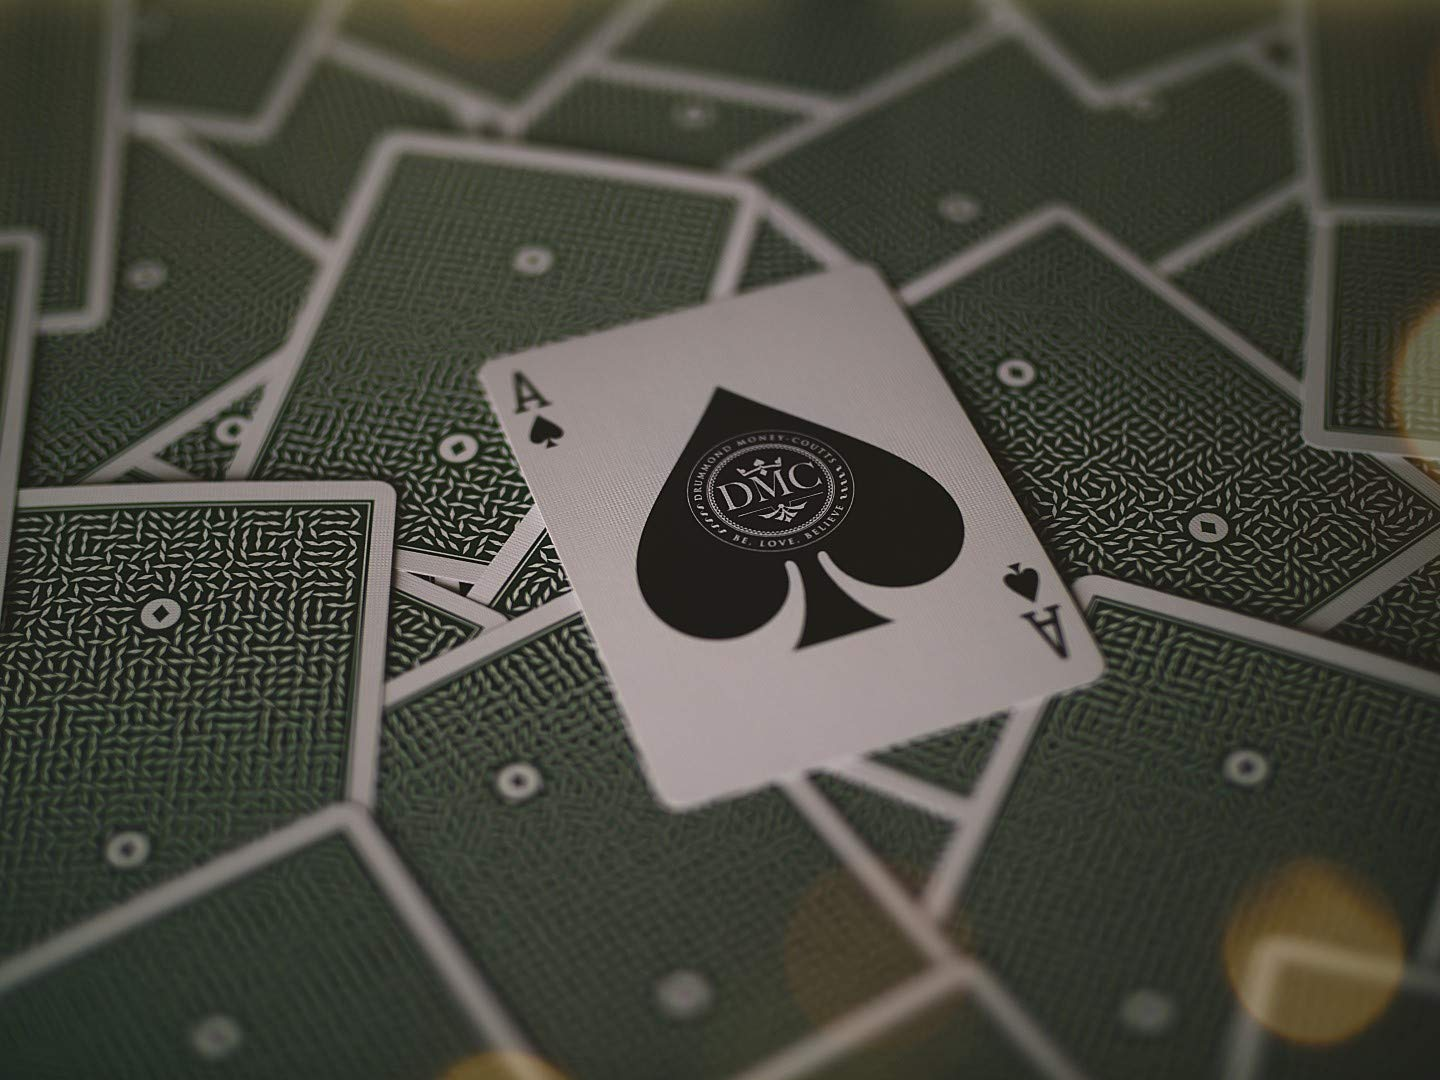 Sovereign Playing Cards DMC Elites Marked Deck by Sovereign Playing Cards (Image #2)